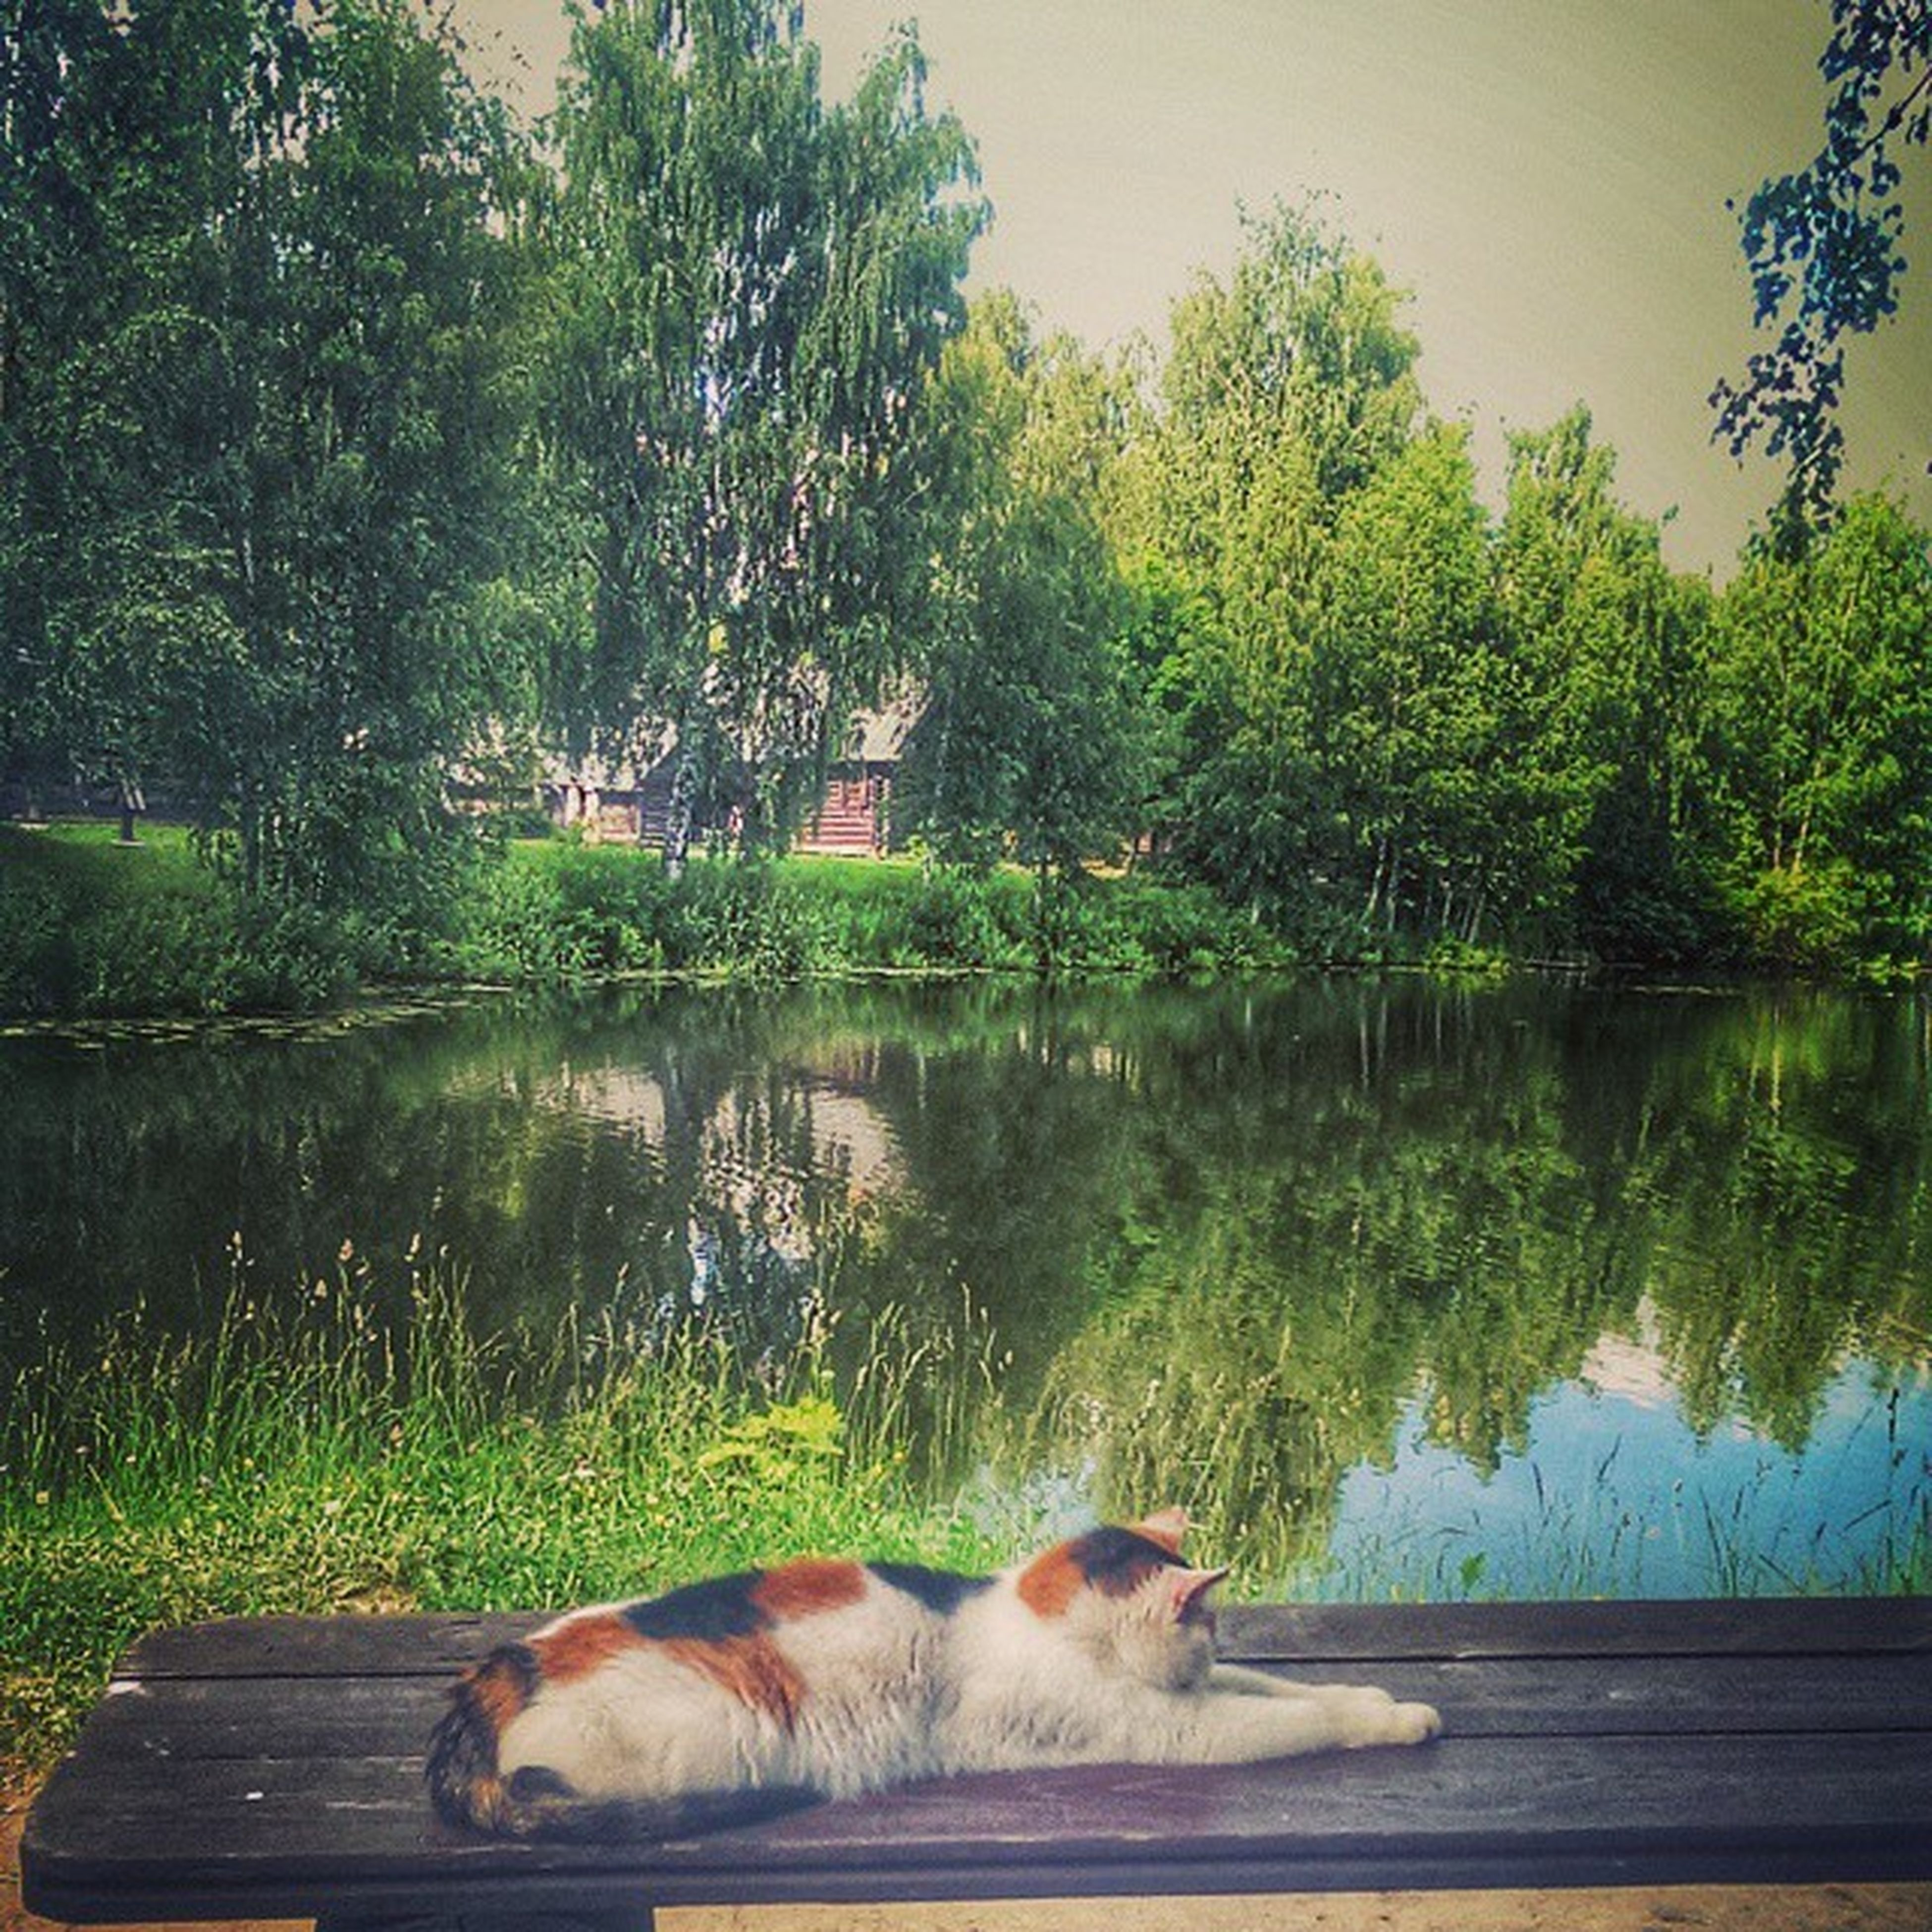 animal themes, domestic animals, mammal, pets, one animal, water, dog, tree, lake, reflection, nature, sky, grass, two animals, river, outdoors, no people, cow, relaxation, day